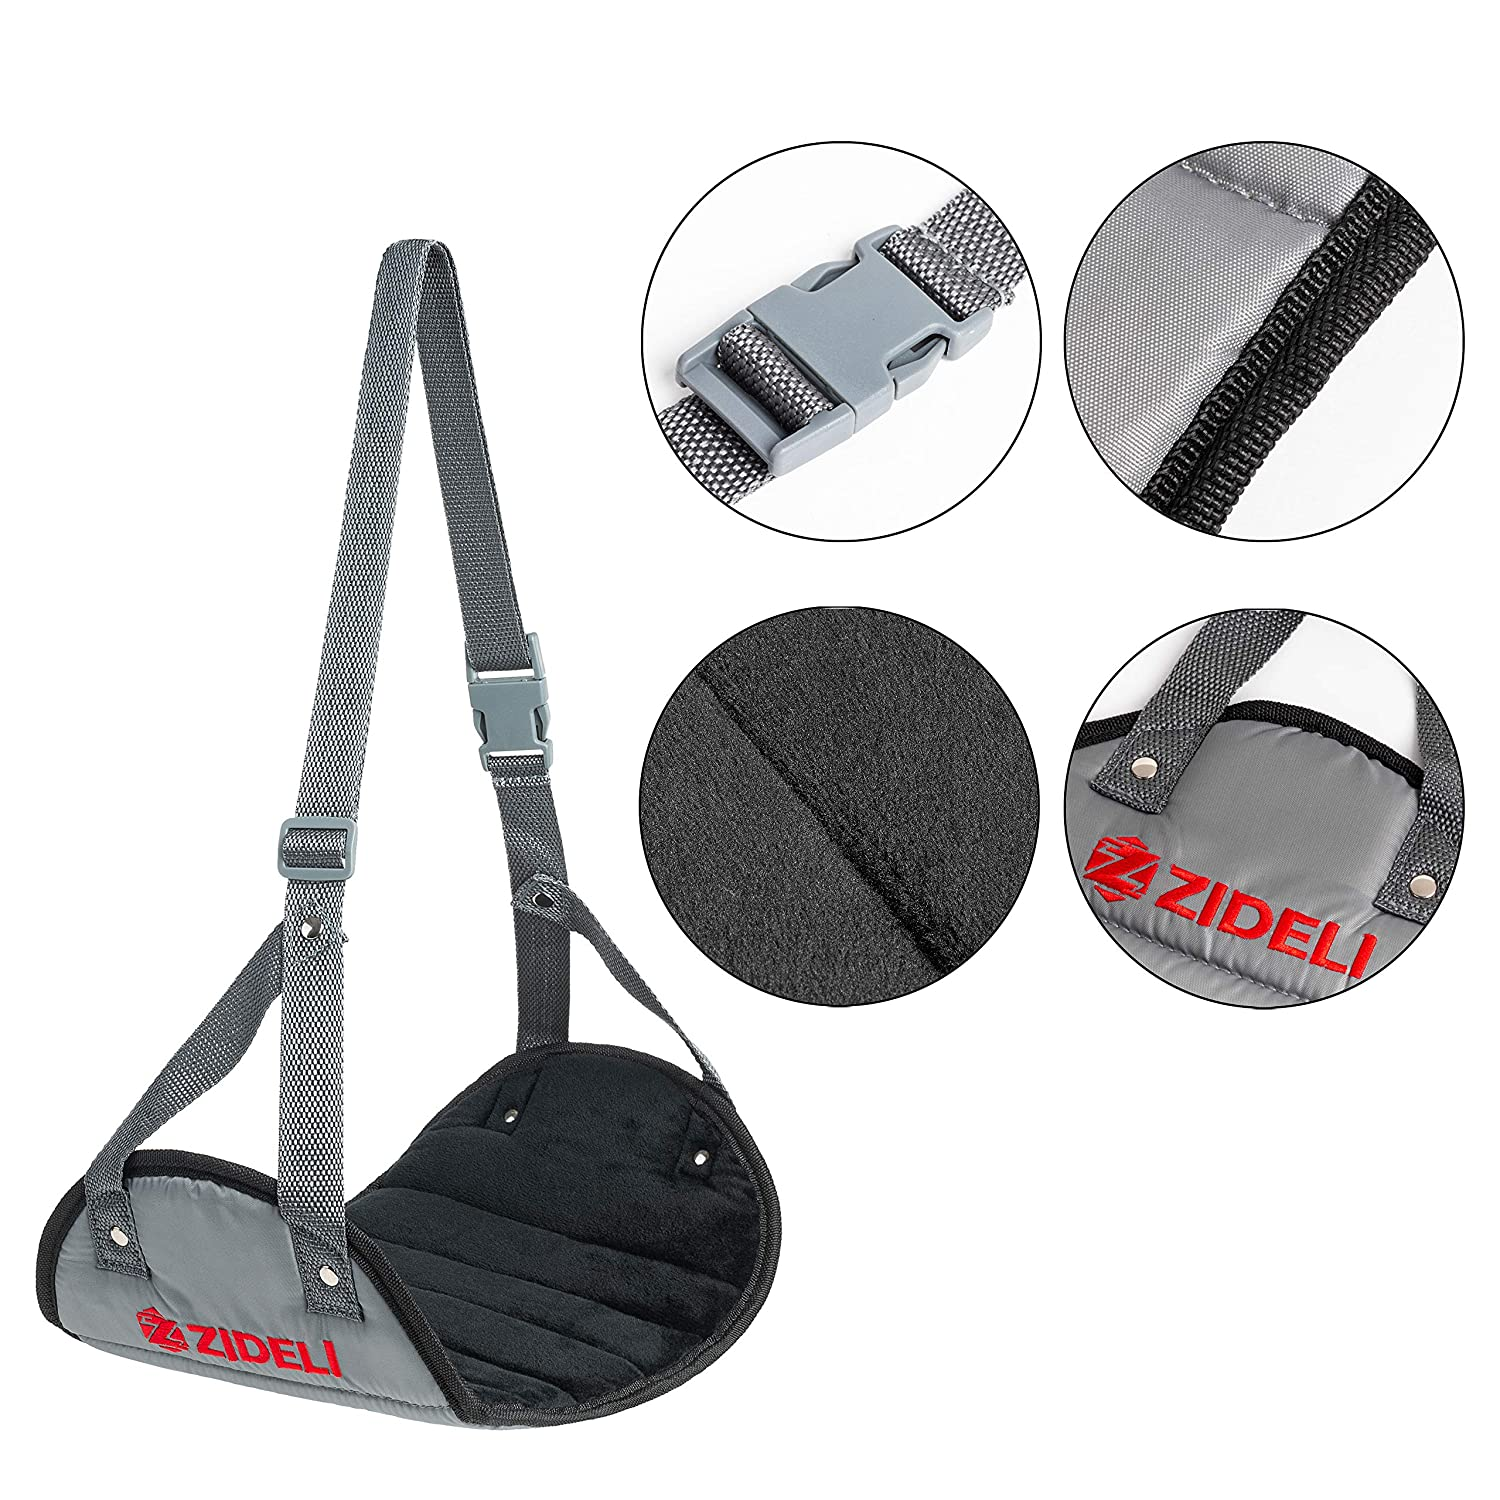 Grey Soft and Comfy Foot Hanger for Flight Bus Car Train Office Desk Reduces Foot Swelling and Back Soreness Must Have Travel Accessory ZIDELI Portable Hammock Footrest for Airplane Travel